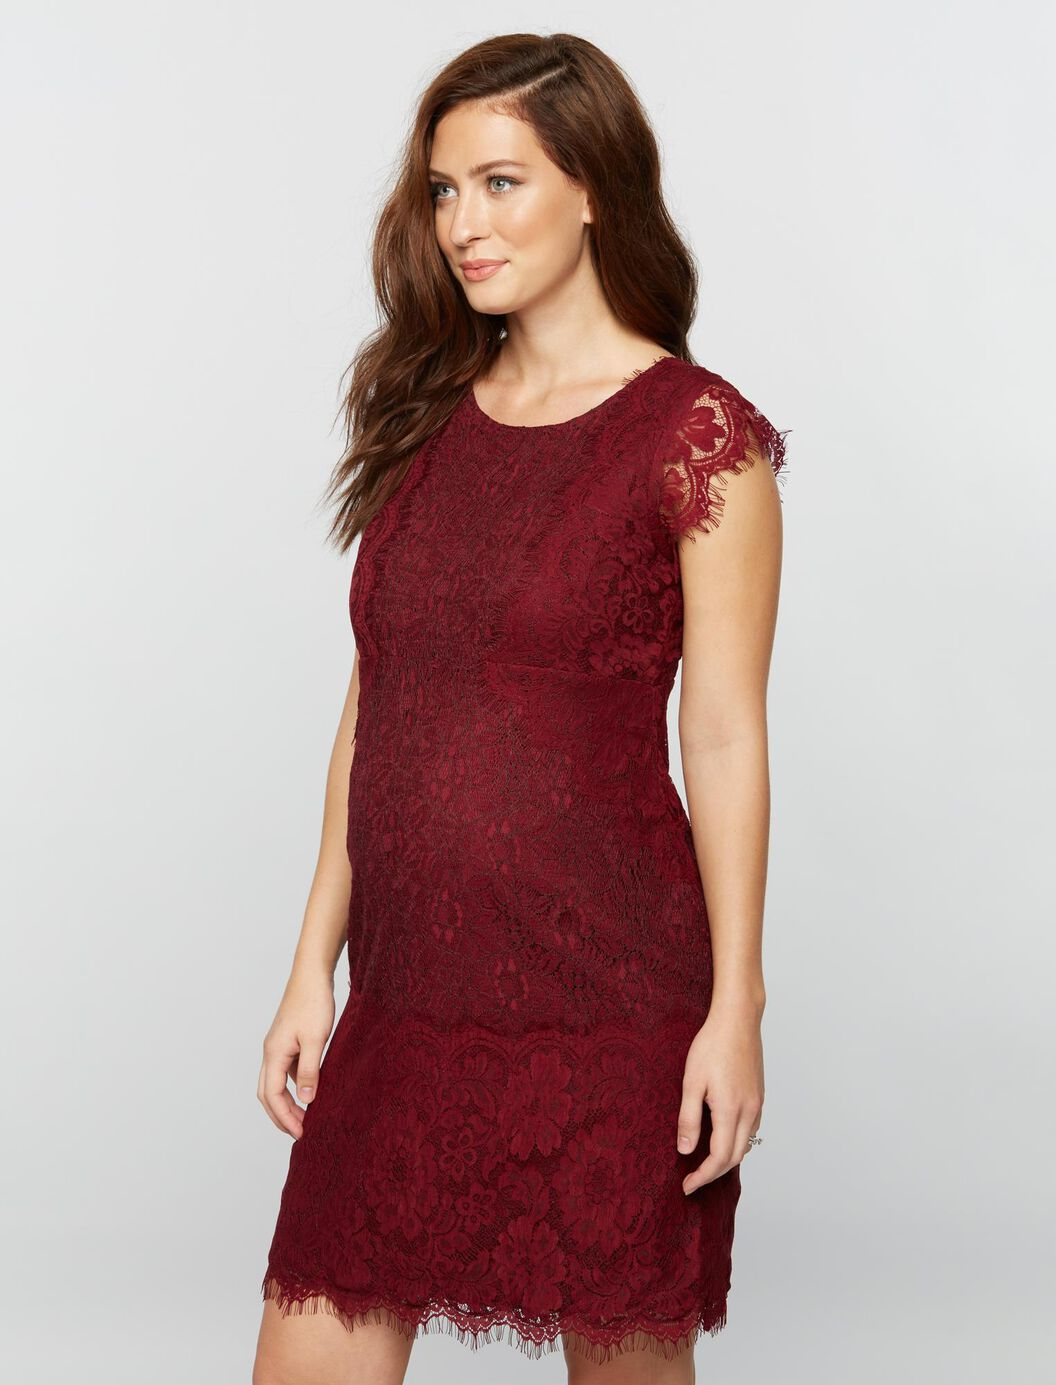 Lace trim cap sleeve maternity dress a pea in the pod maternity lace trim cap sleeve maternity dress fall burgundy ombrellifo Gallery